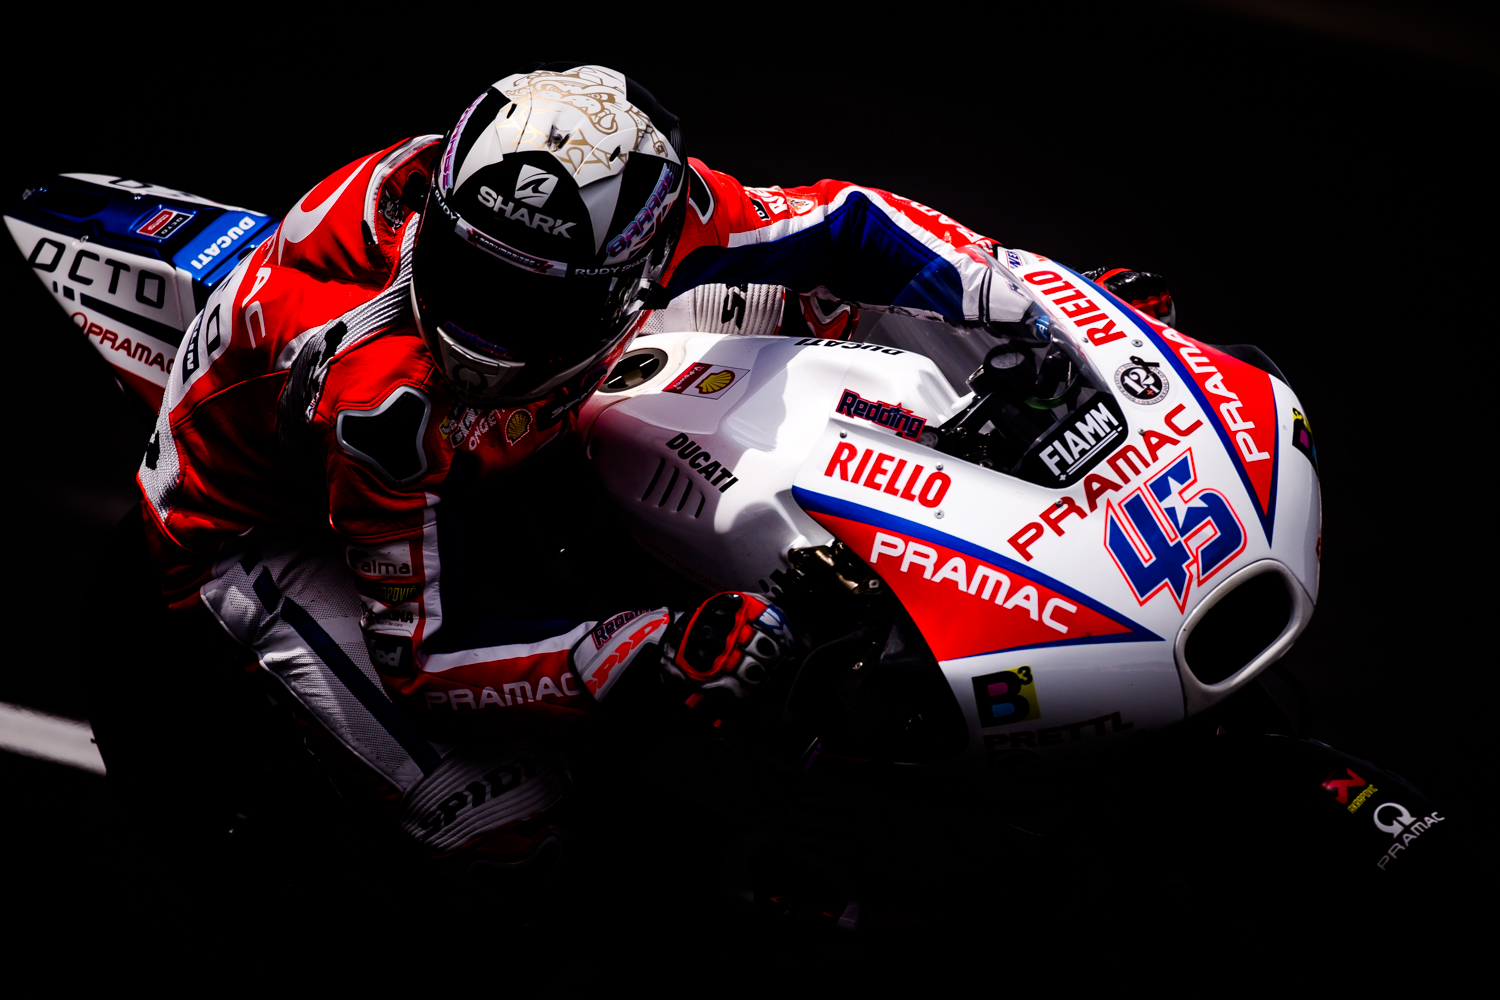 SCOTT REDDING #45